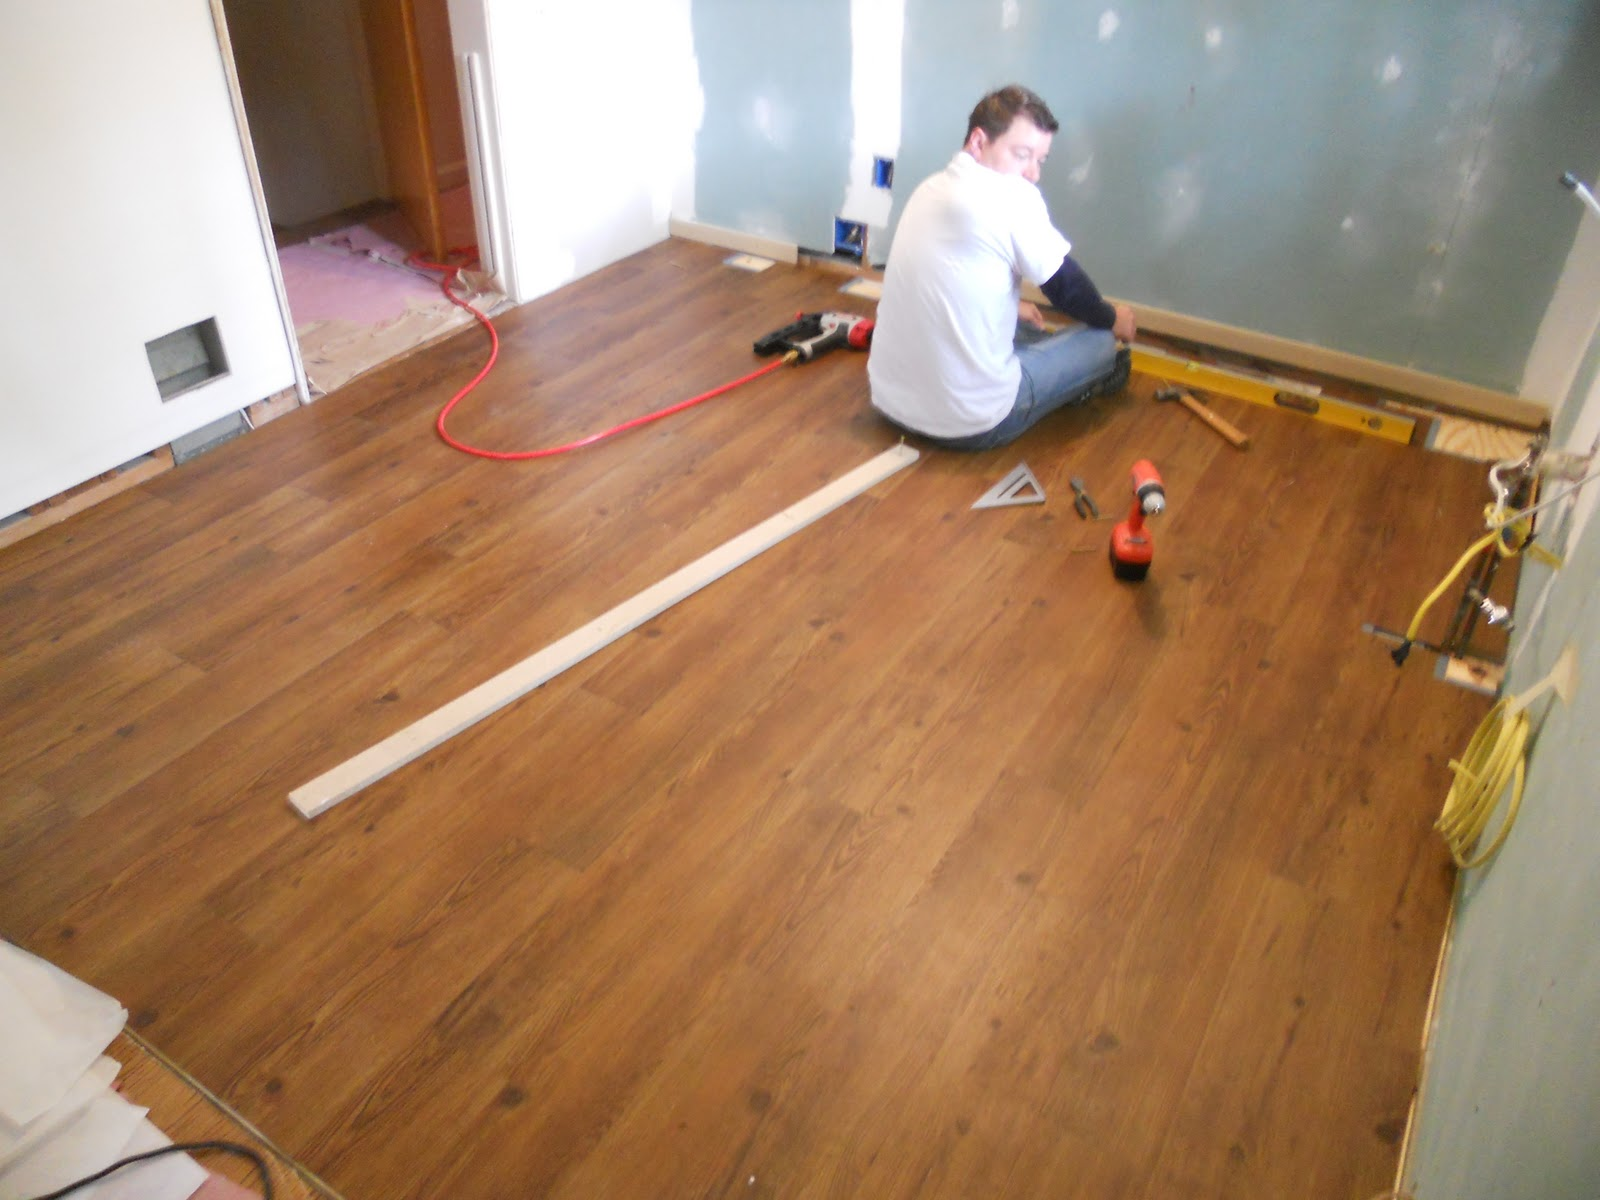 Peel And Stick Laminate Flooring the floors are prepped what about going over them with a self stick vinyl wood plank product in a color i prefer or even make a large parquet design Where Were We